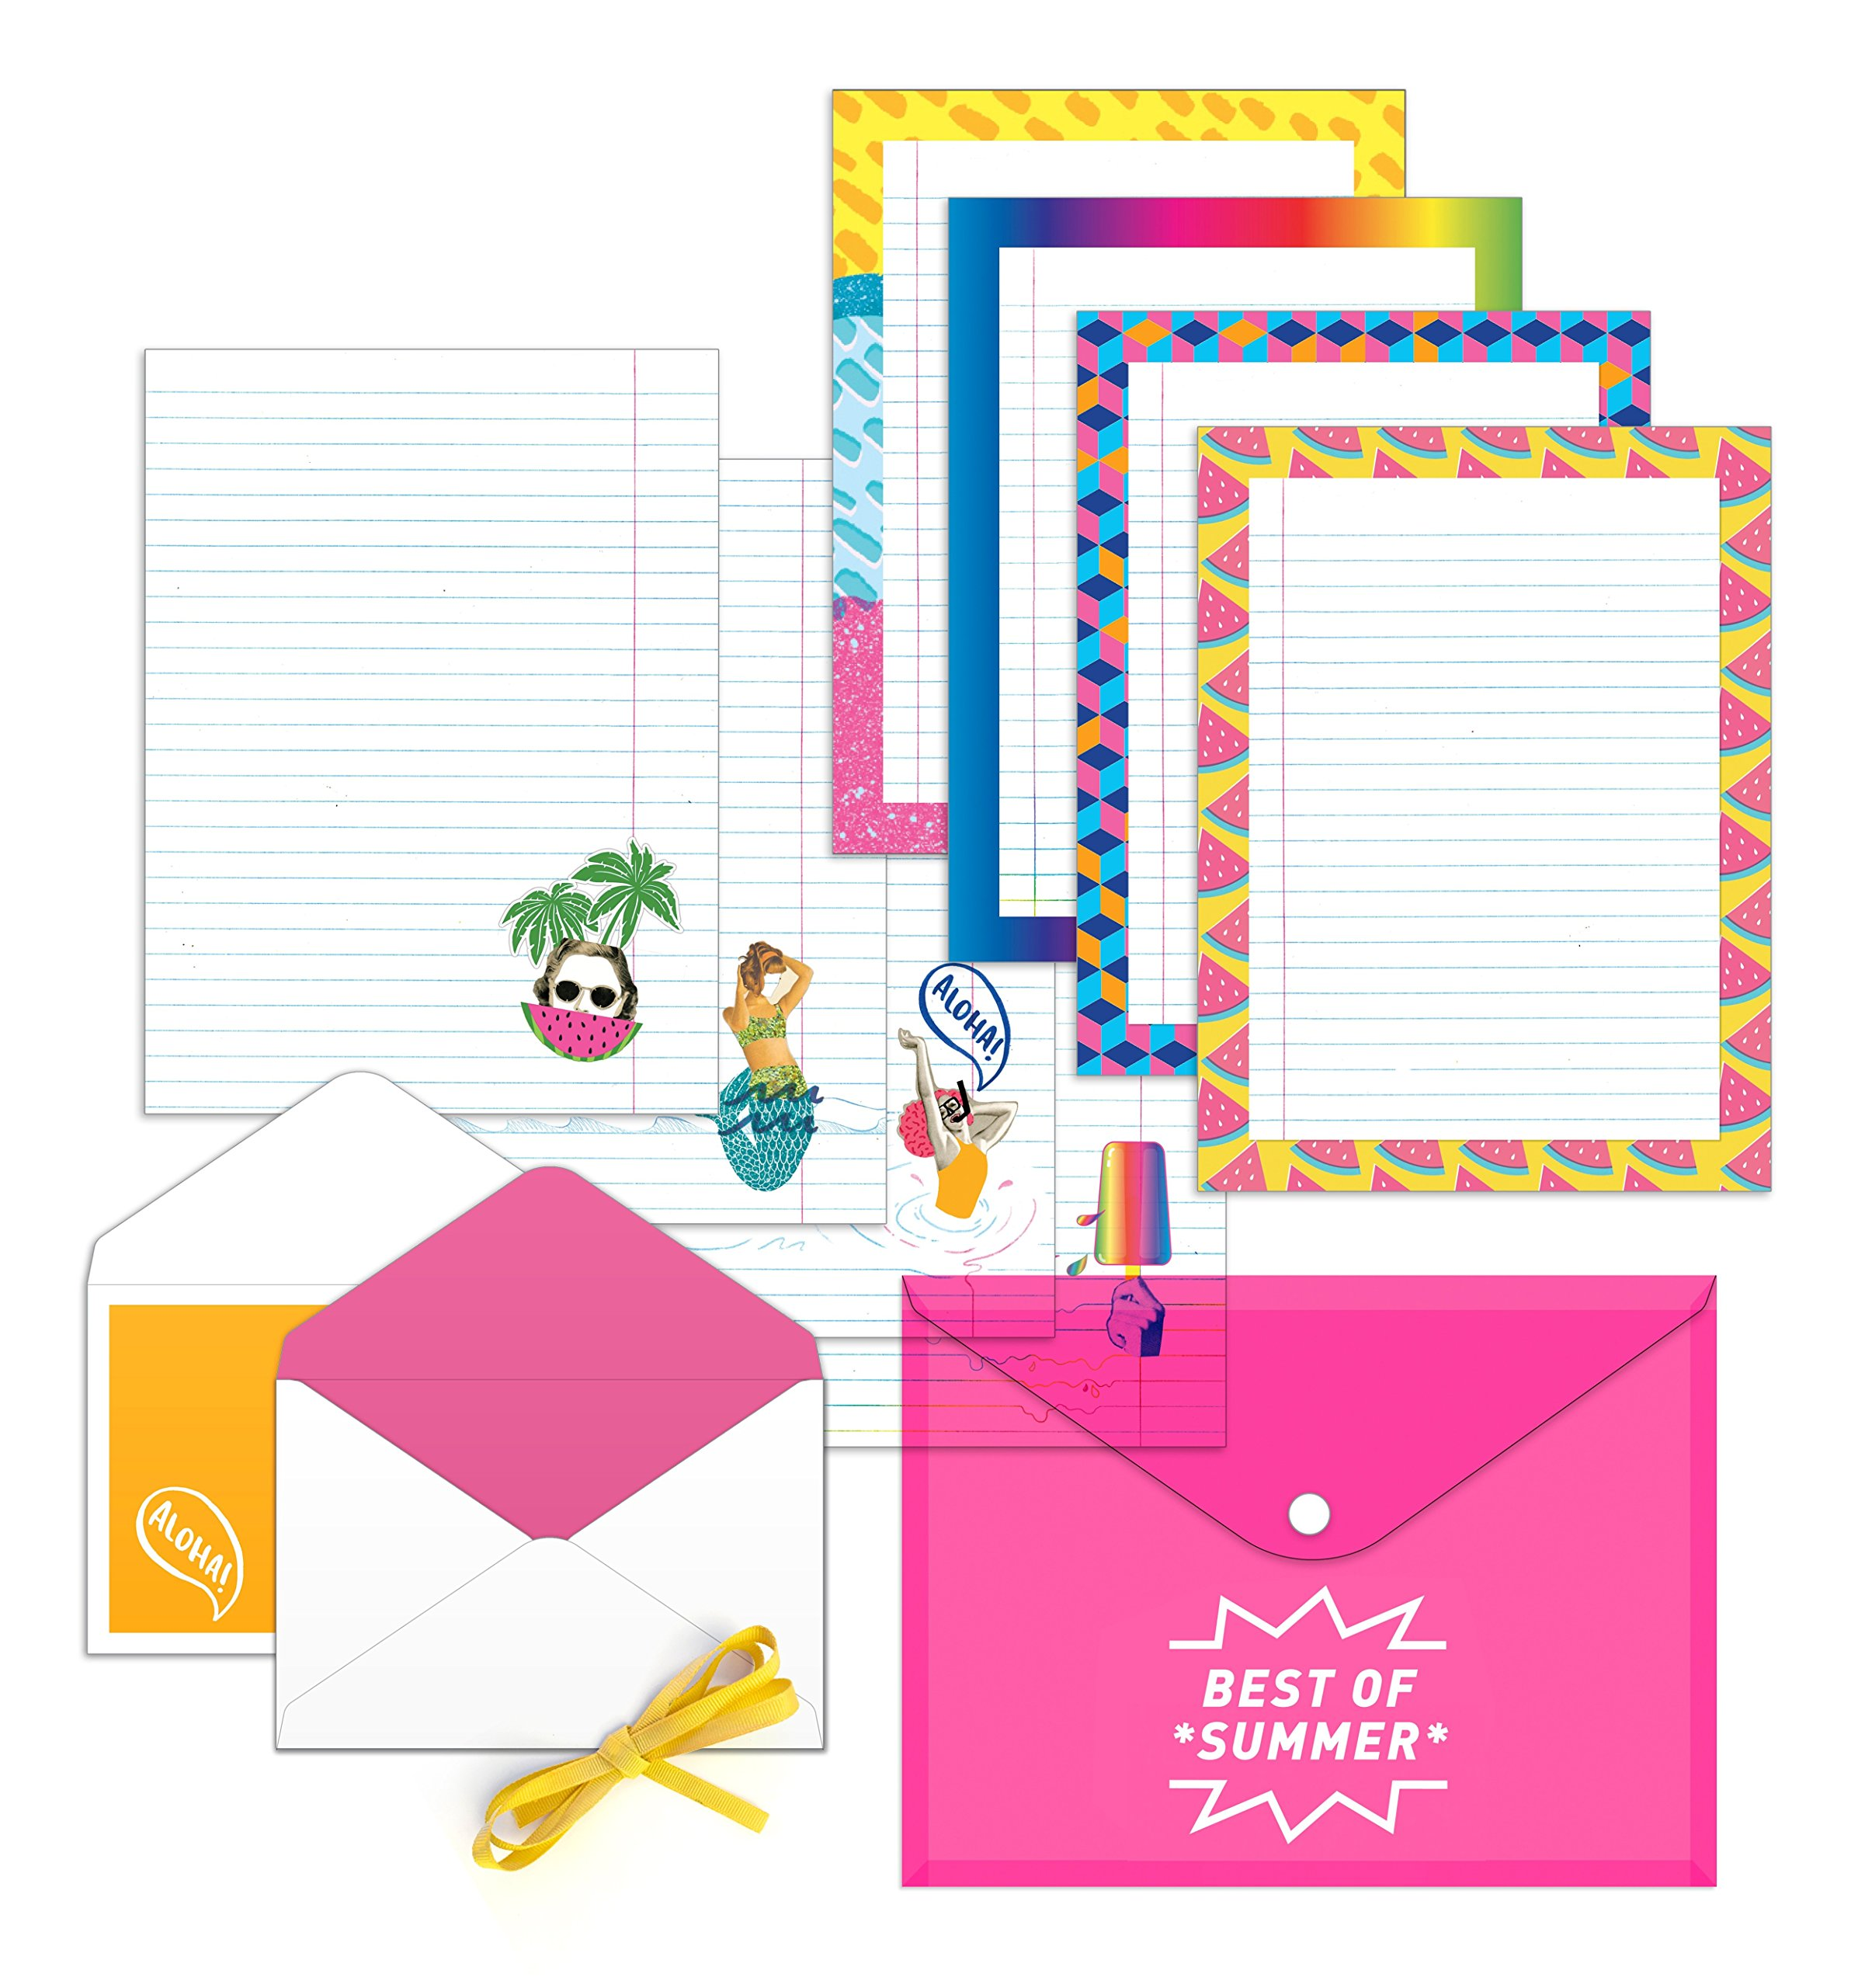 stationery paper 48 pack floral themed printed paper with